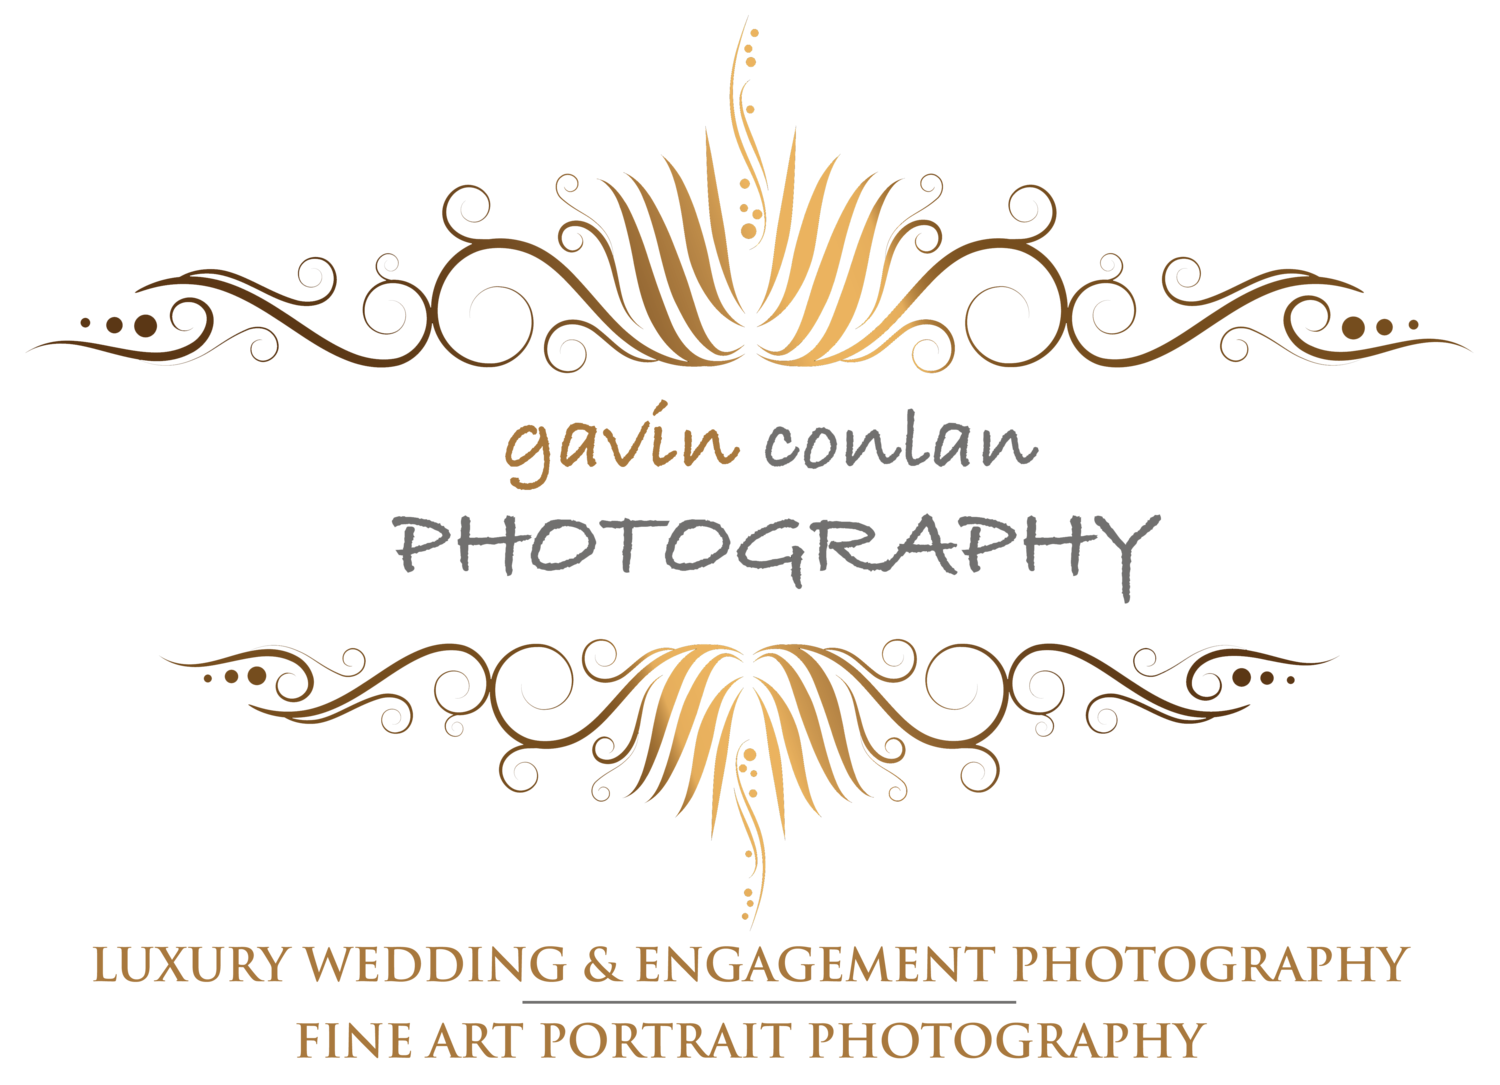 gavin conlan photography Ltd | BLOG